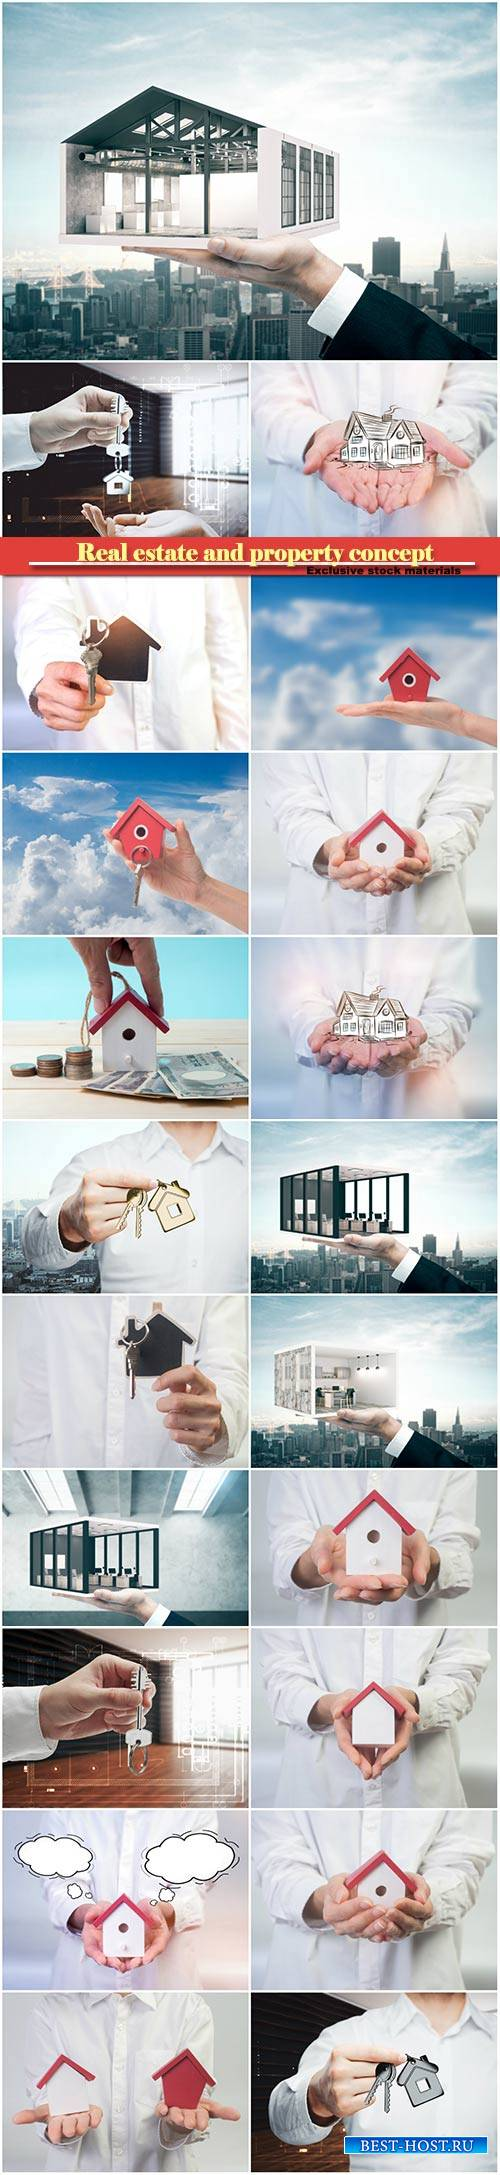 Real estate and property concept, close up of hands holding house or home m ...